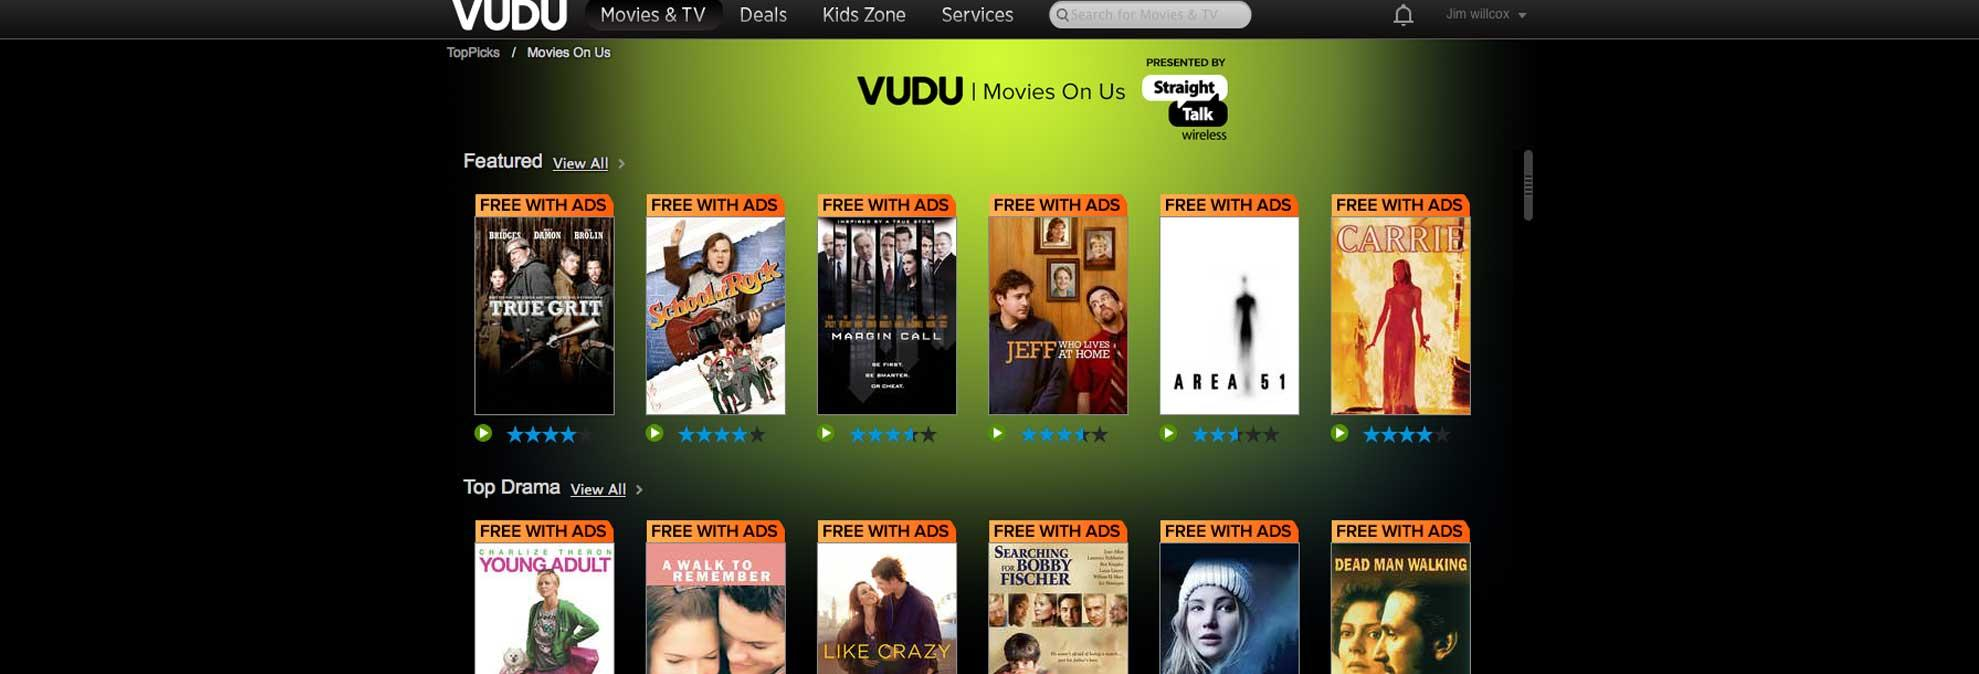 new free streaming service - photo #3